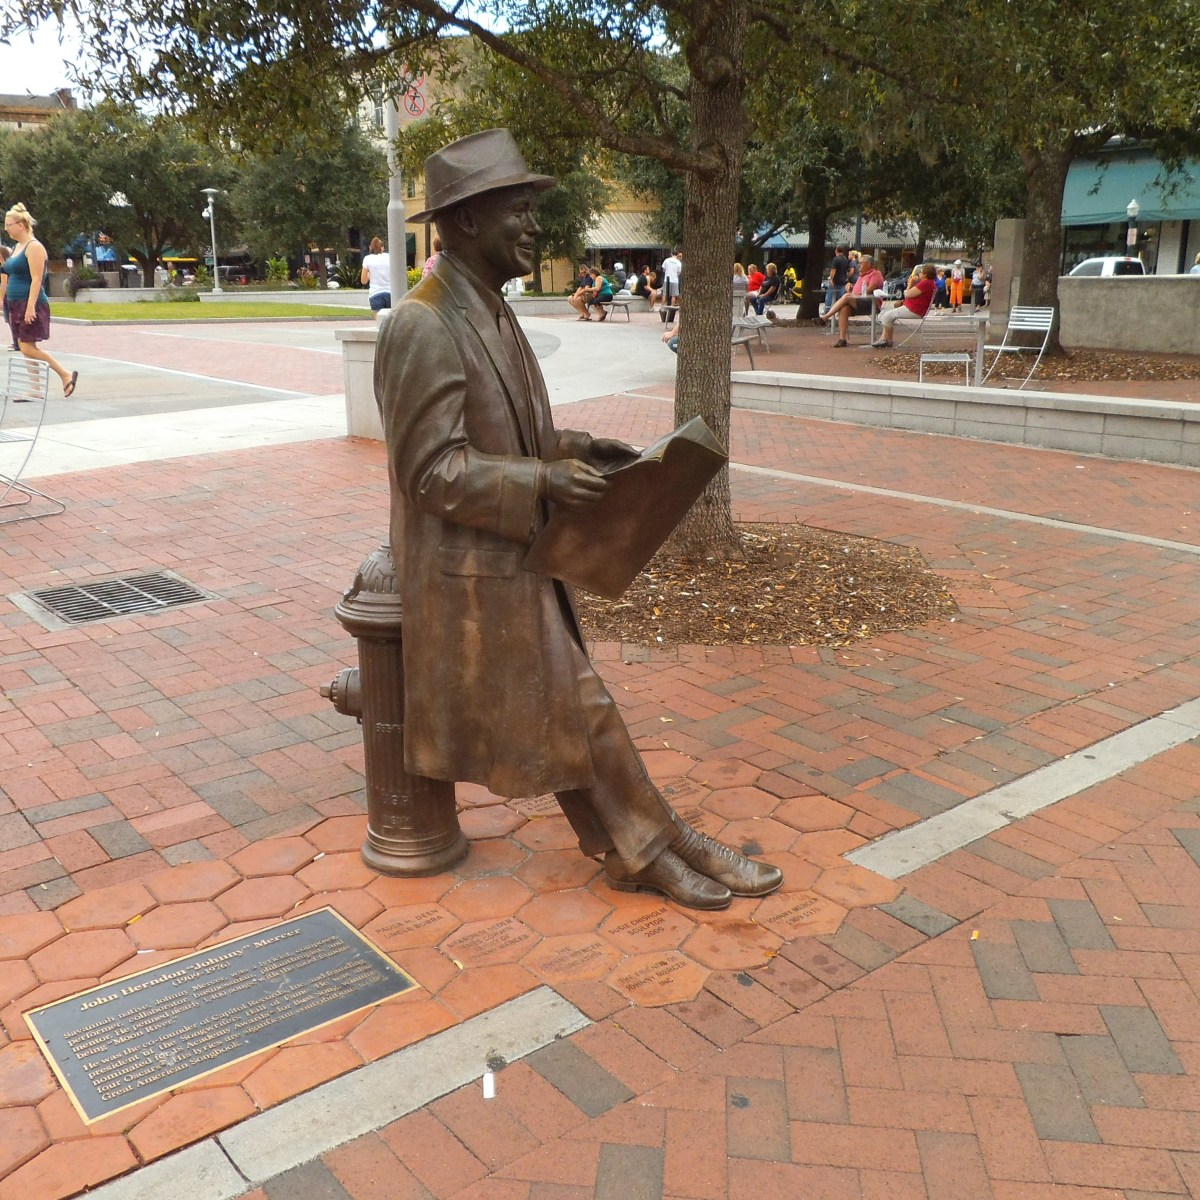 This bronze figure is in Savannah, Georgia. Although the man reading the newspaper while leaning against a fire hydrant isn't in front of a library, it would have been perfect for such a location.